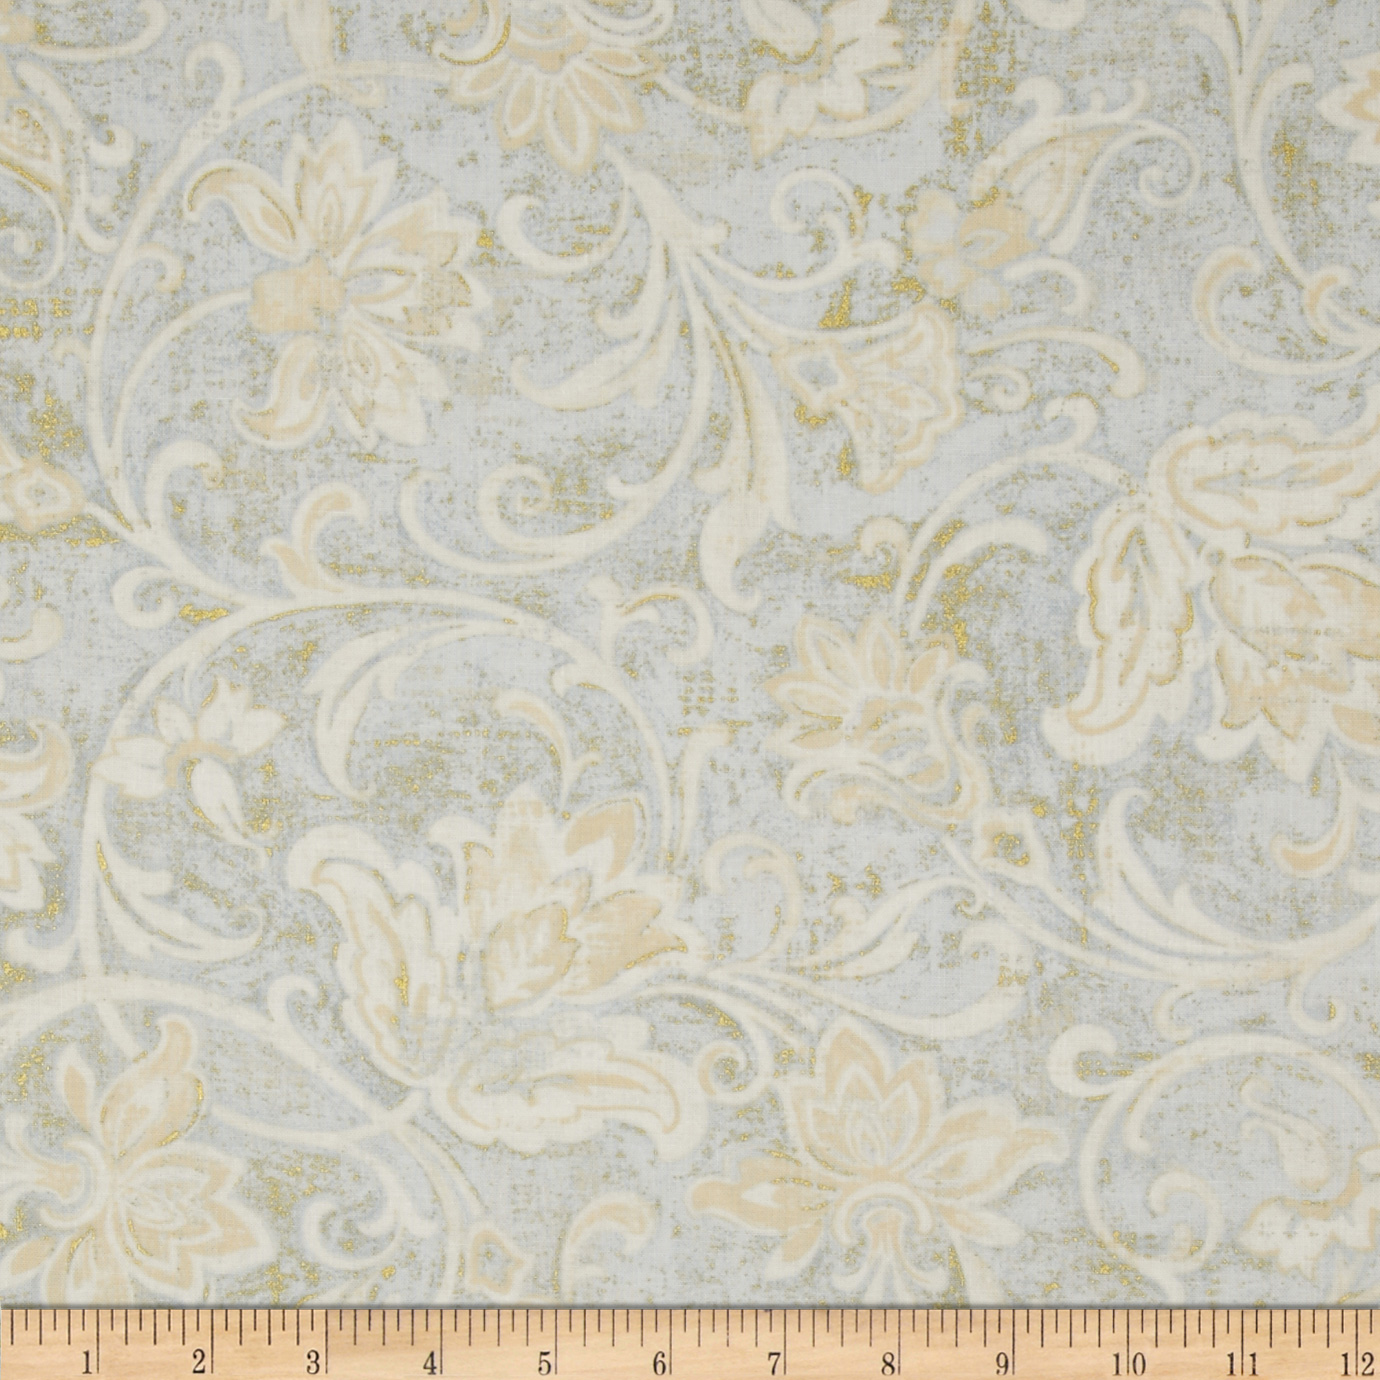 Timeless Treasures Patina Metallic Floral Scroll Mist Fabric